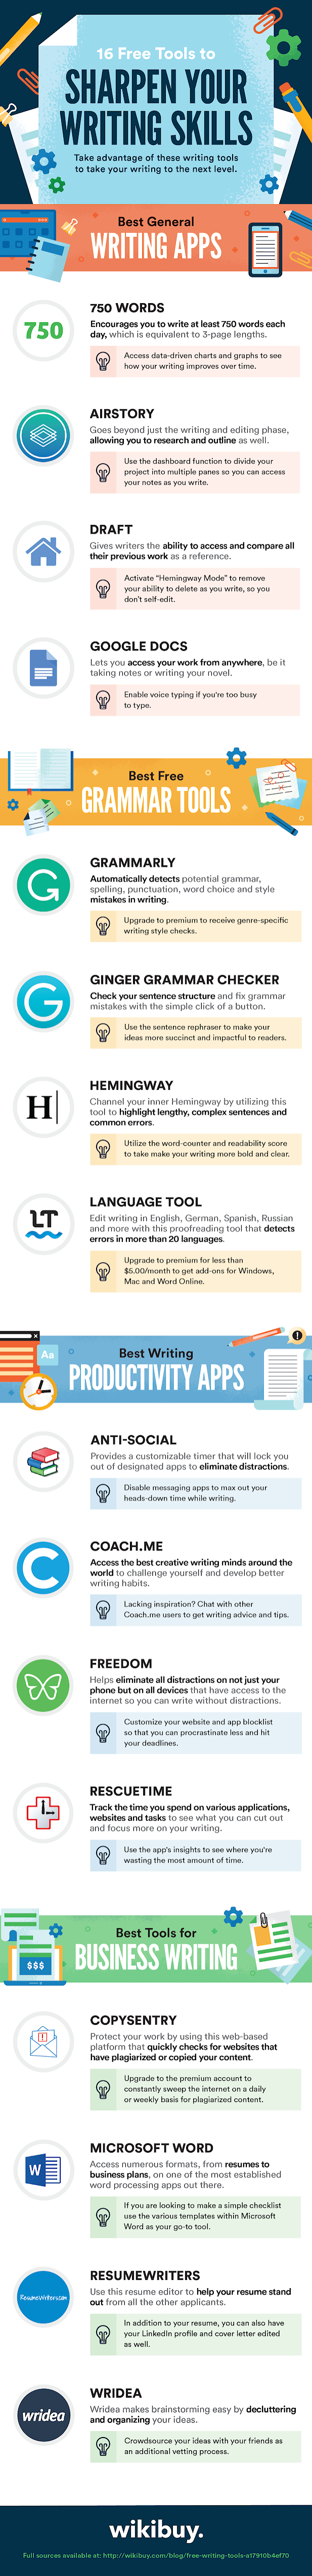 16 Free Tools to Sharpen Your Writing in 2020 #Infographic